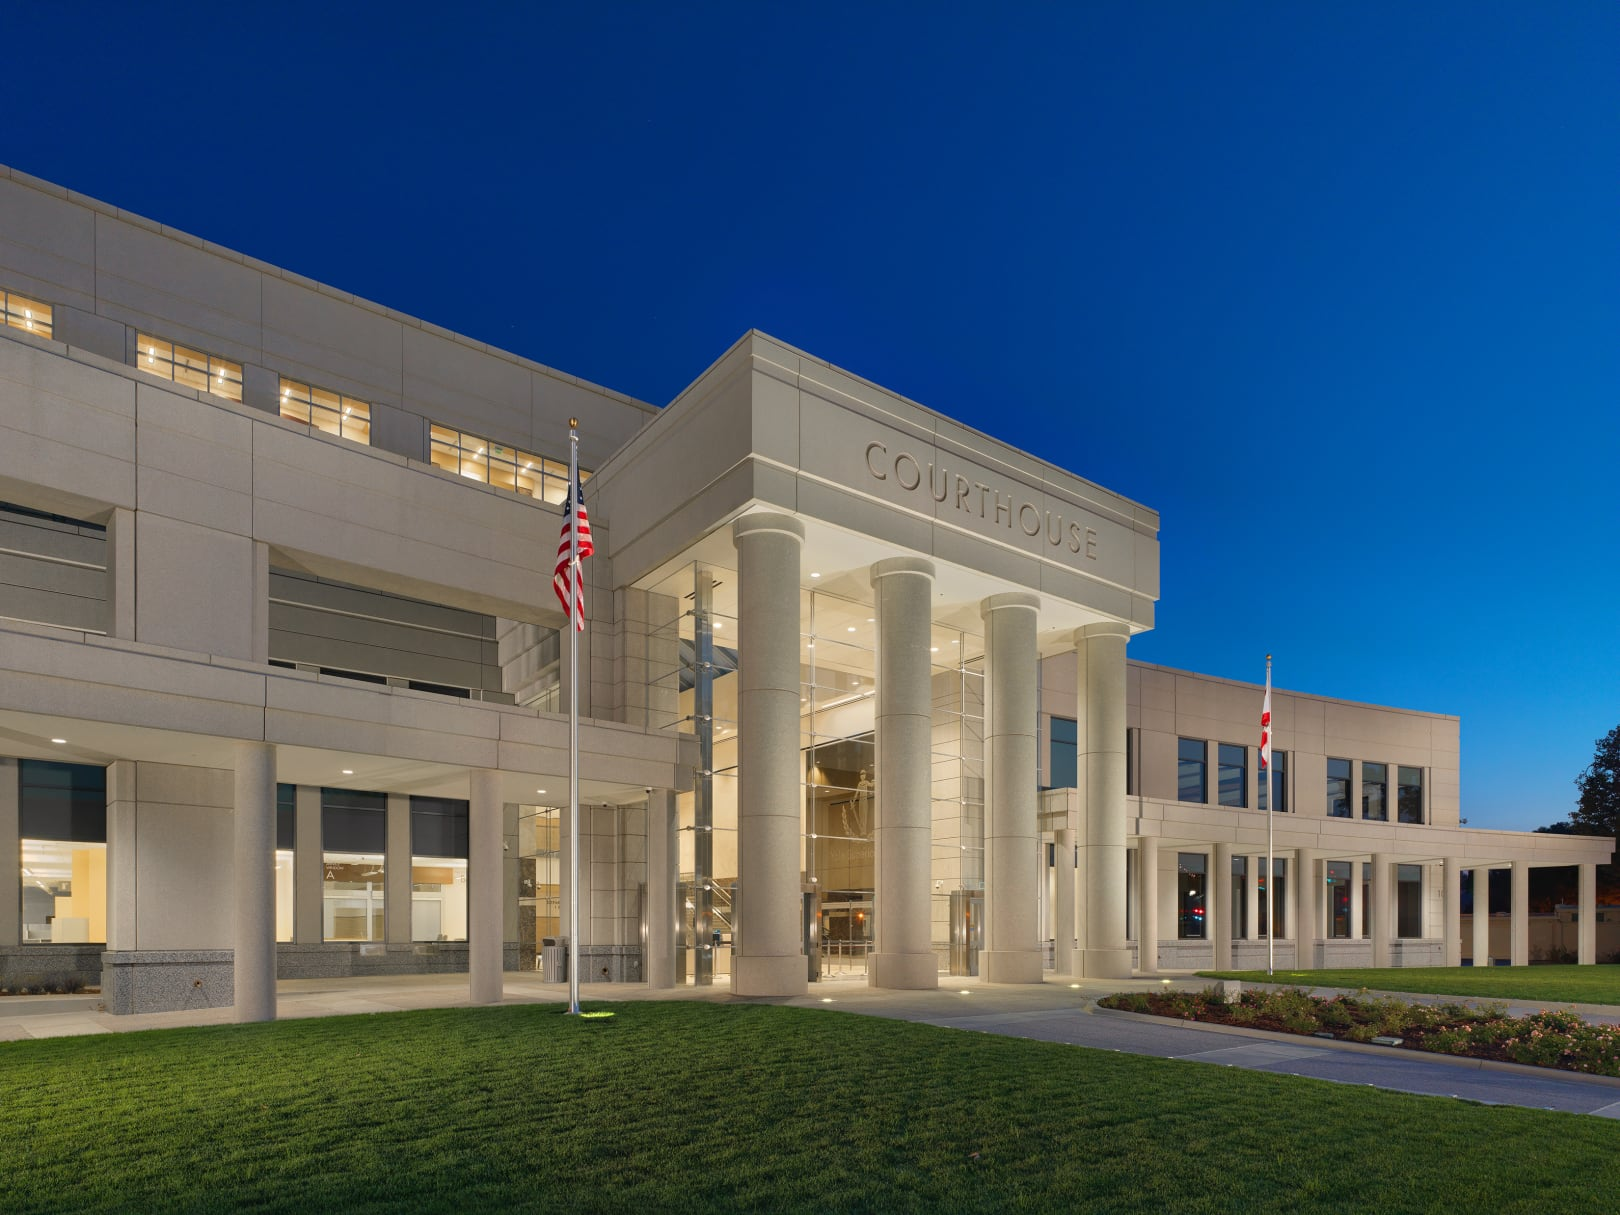 01 Yolo County Courthouse-RVR